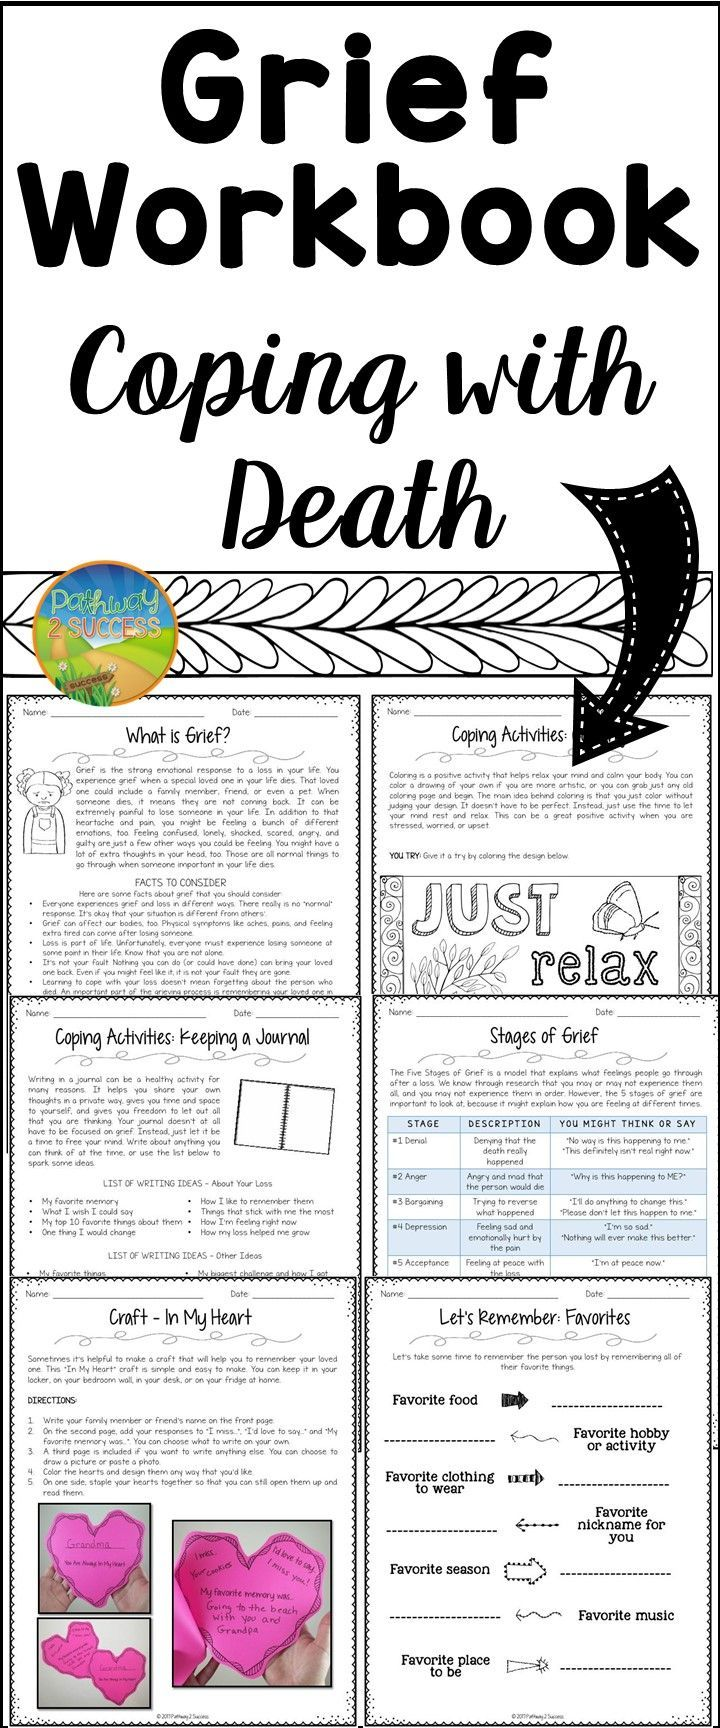 Grief Workbook for Coping with Death